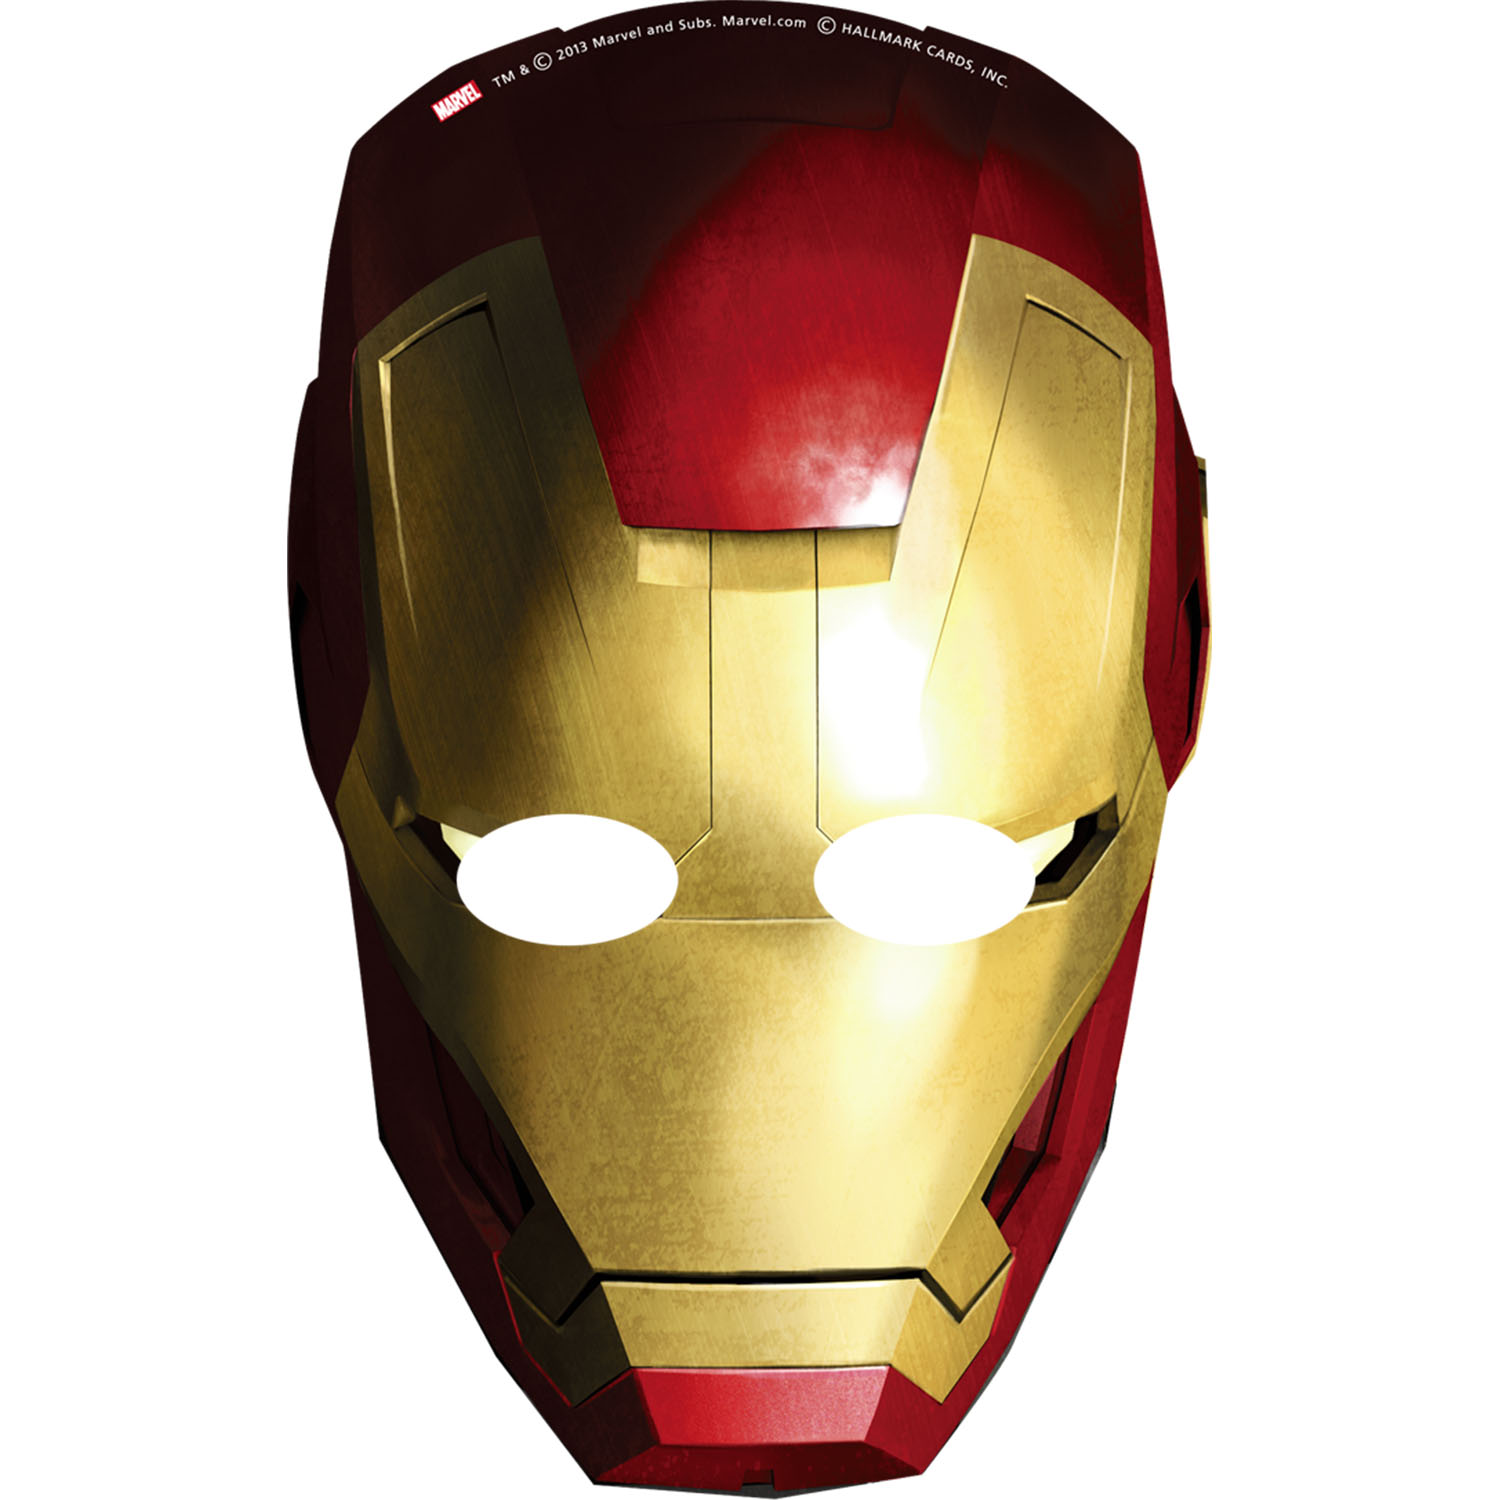 Iron Man Party Supplies Iron Man 3 Mask At ToyStop